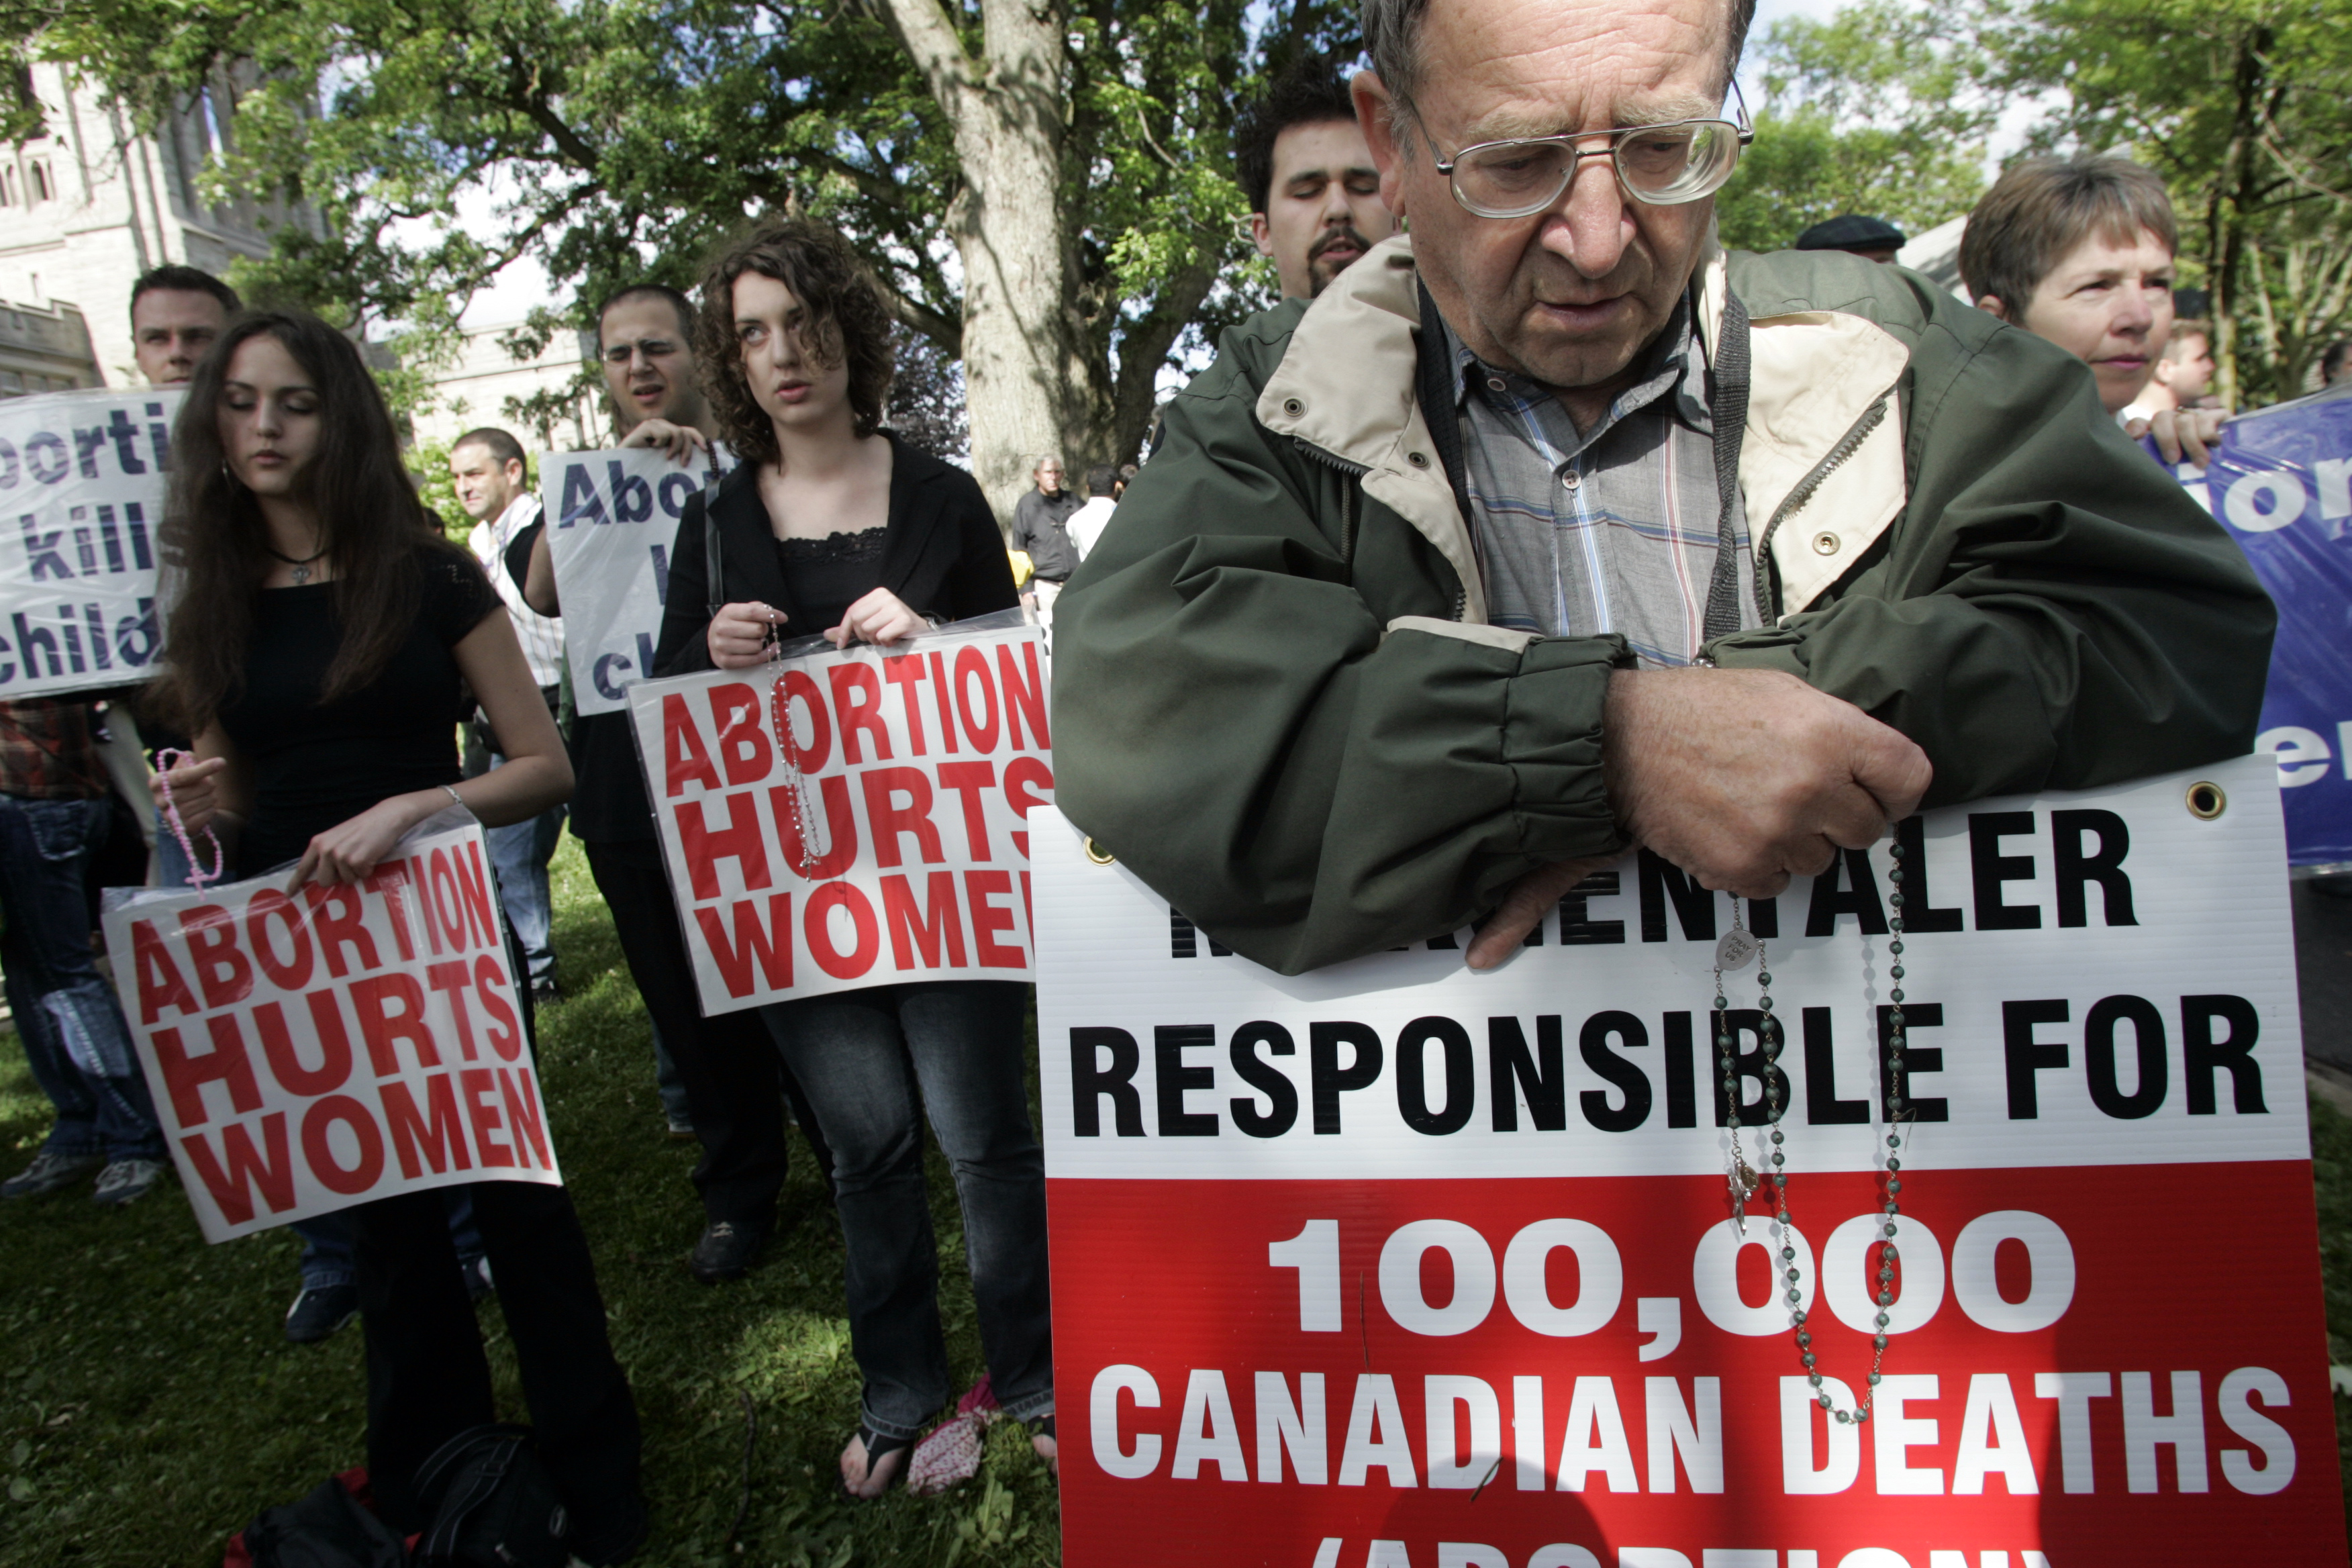 Hundreds of anti-abortion activists marched through                   the streets of London, Ontario and demonstrated outside a University of Western Ontario event on June 16, 2005.